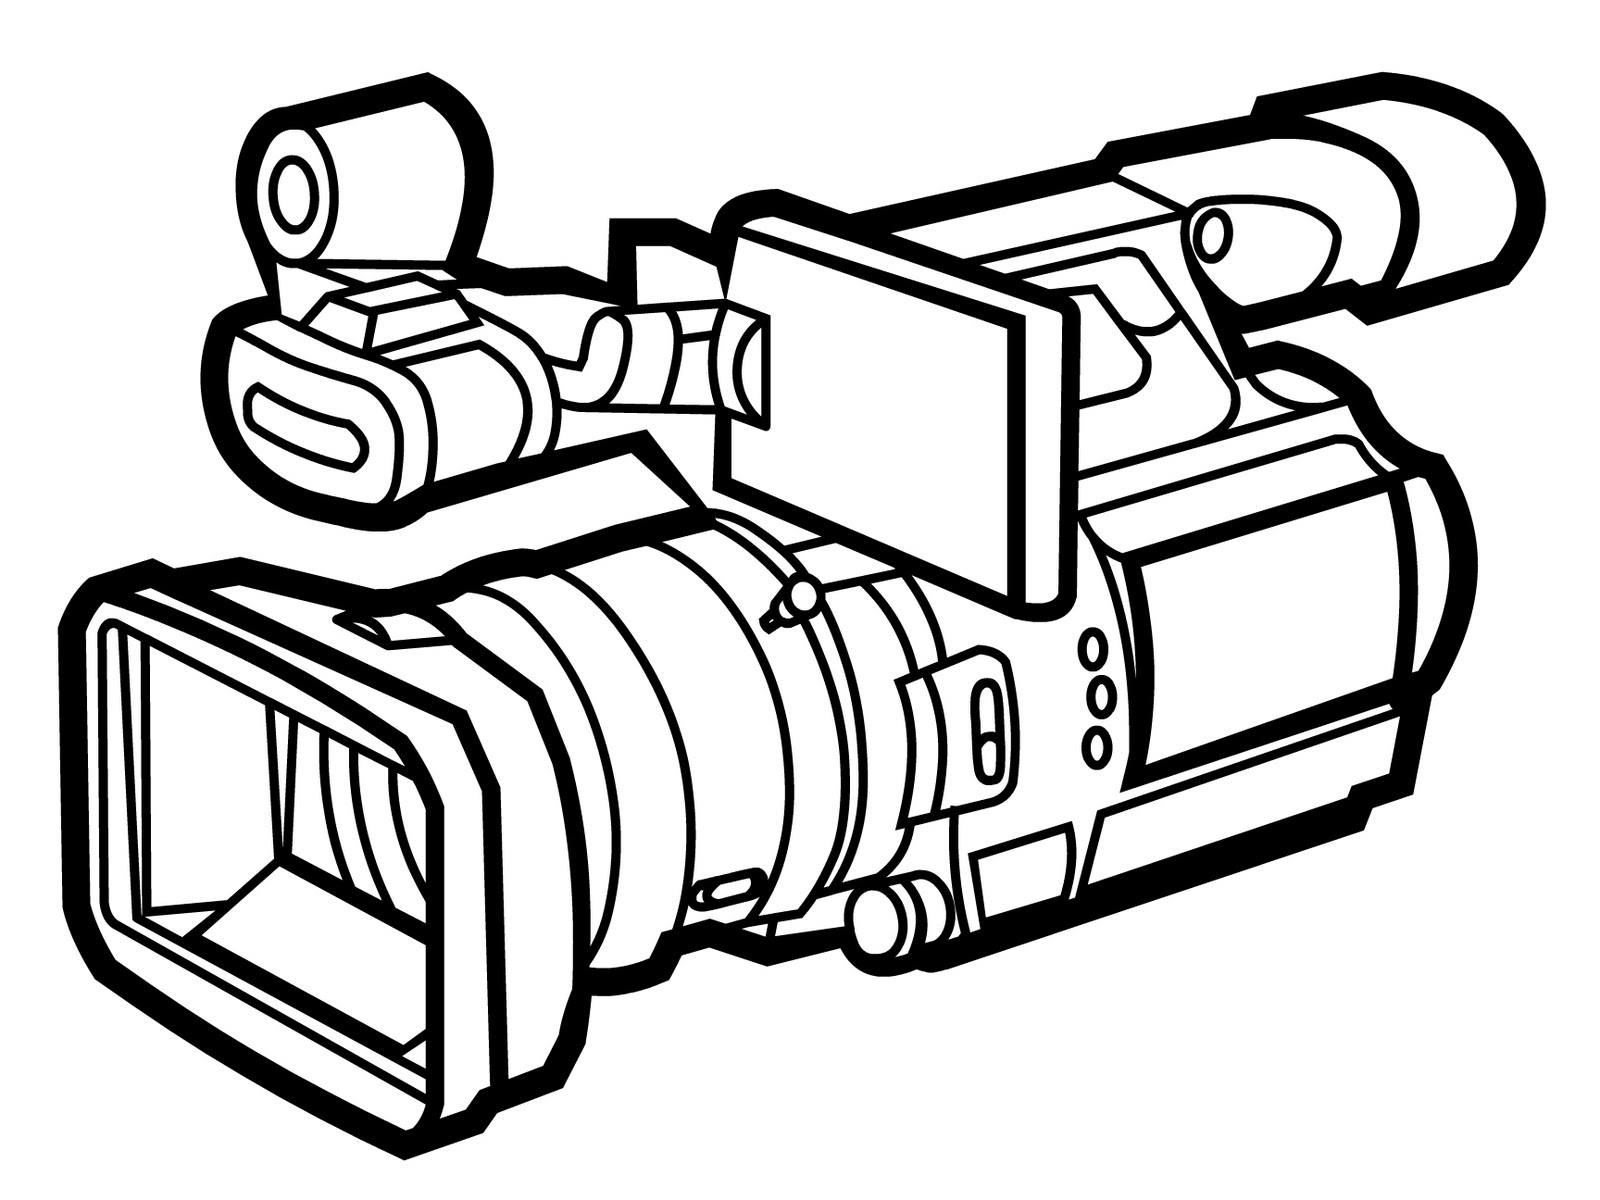 Drawing clip at getdrawings. Camera clipart line art